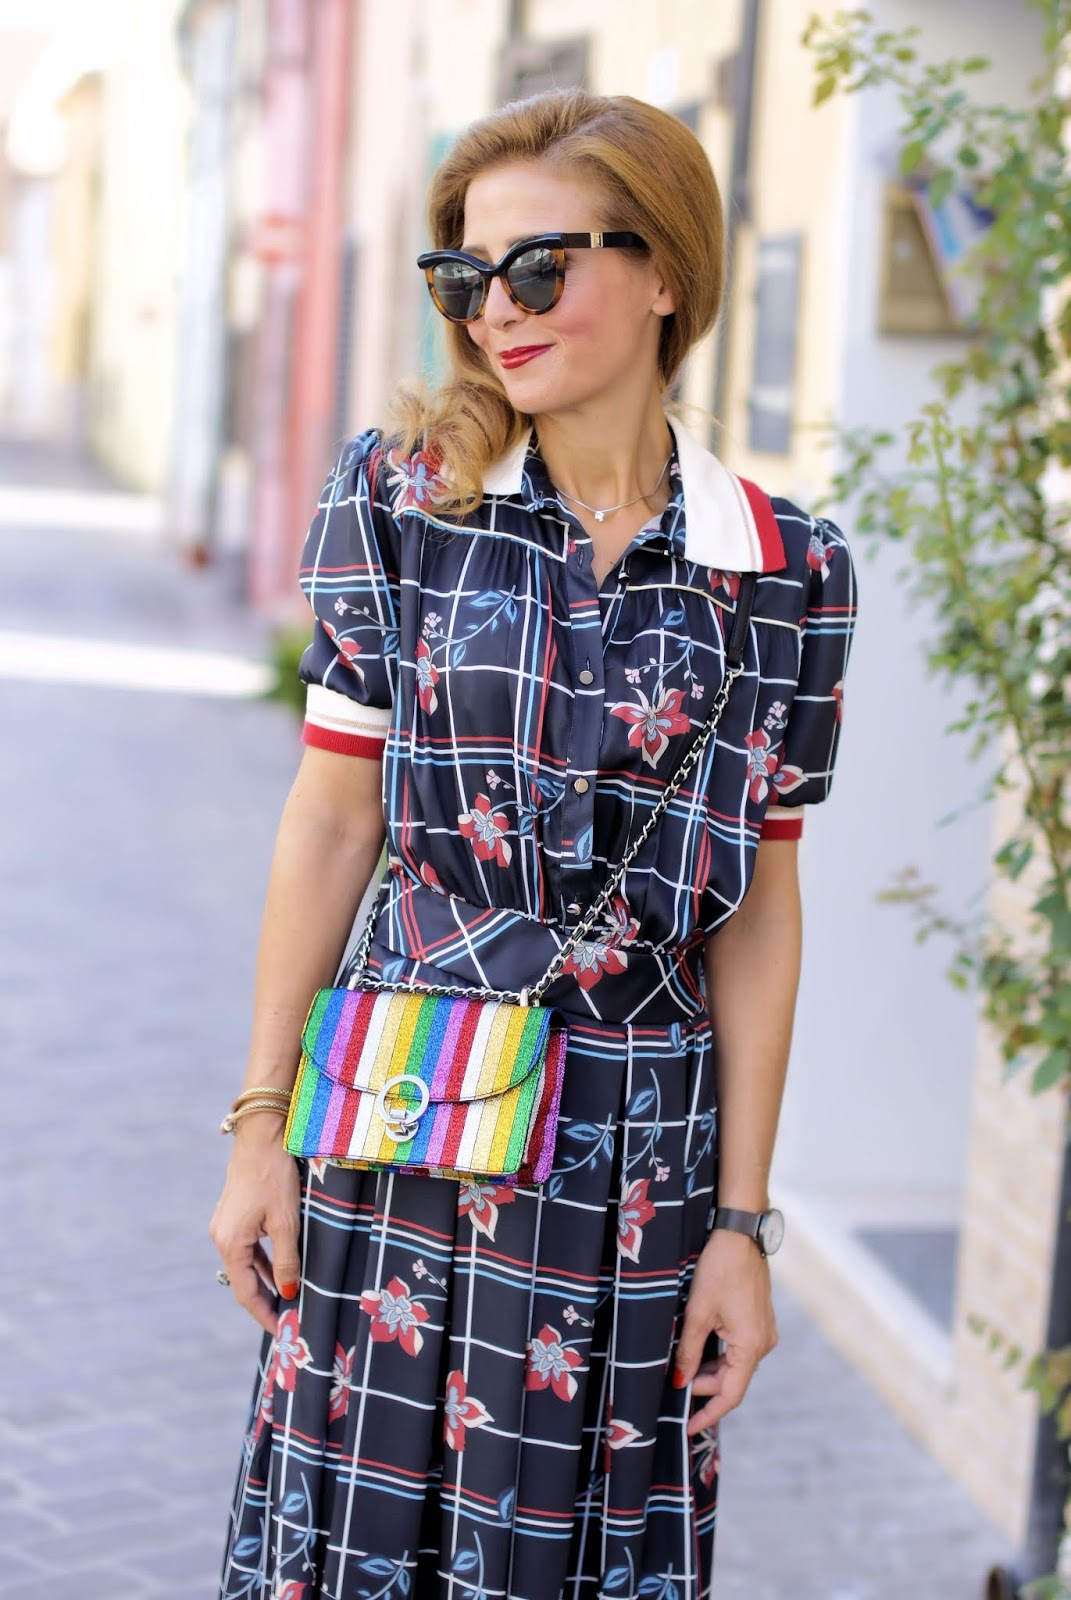 Miu Miu style white collar dress and rainbow bag on Fashion and Cookies fashion blog, fashion blogger style